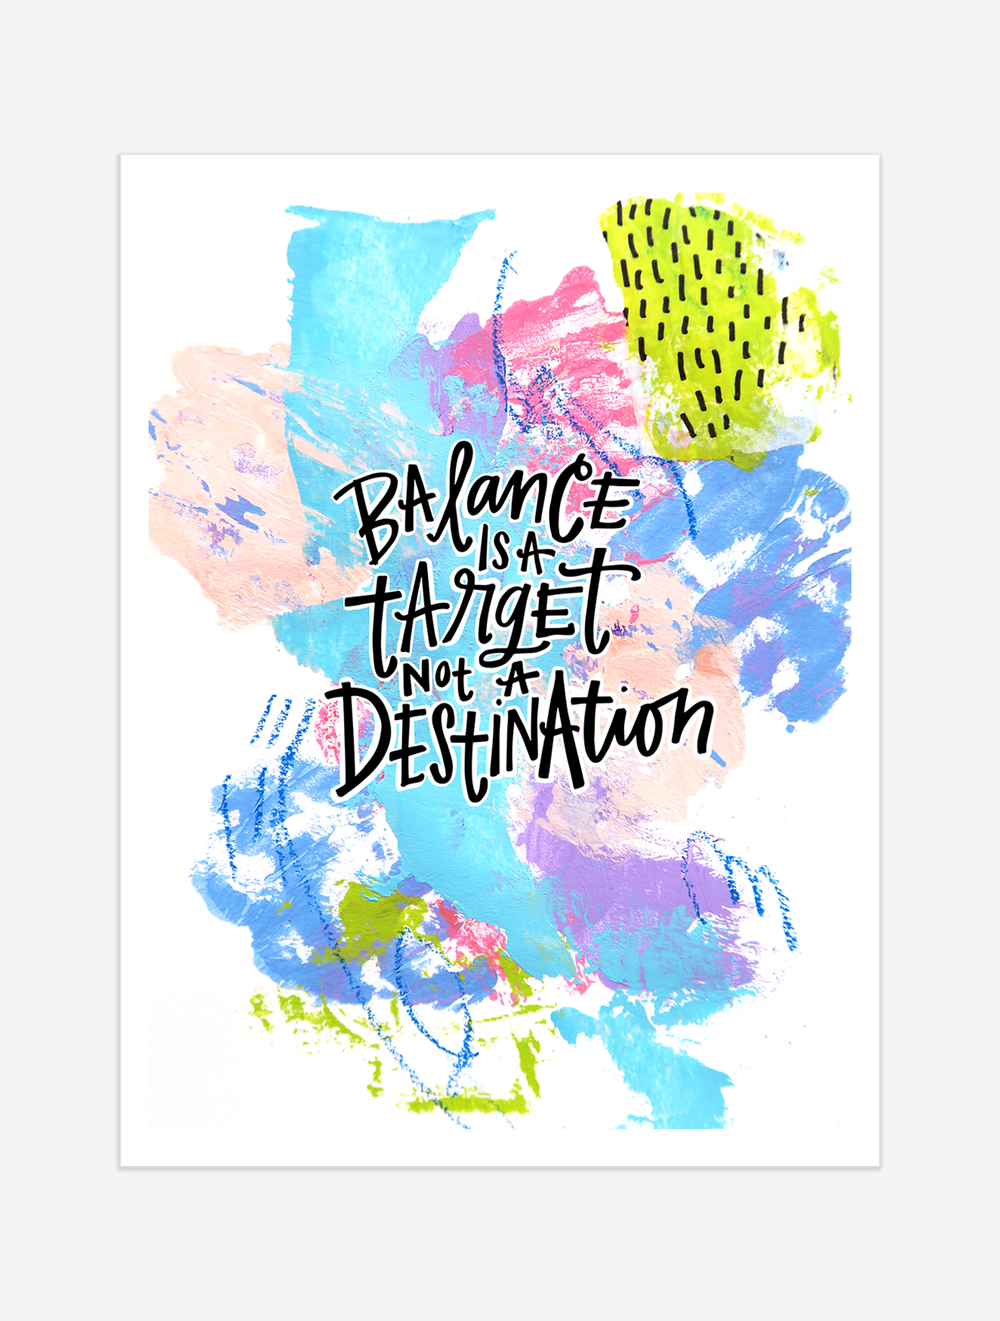 A reminder that balance isn't a destination, but something to aim for. $25 giclee print available at the Made Vibrant Art Shop.